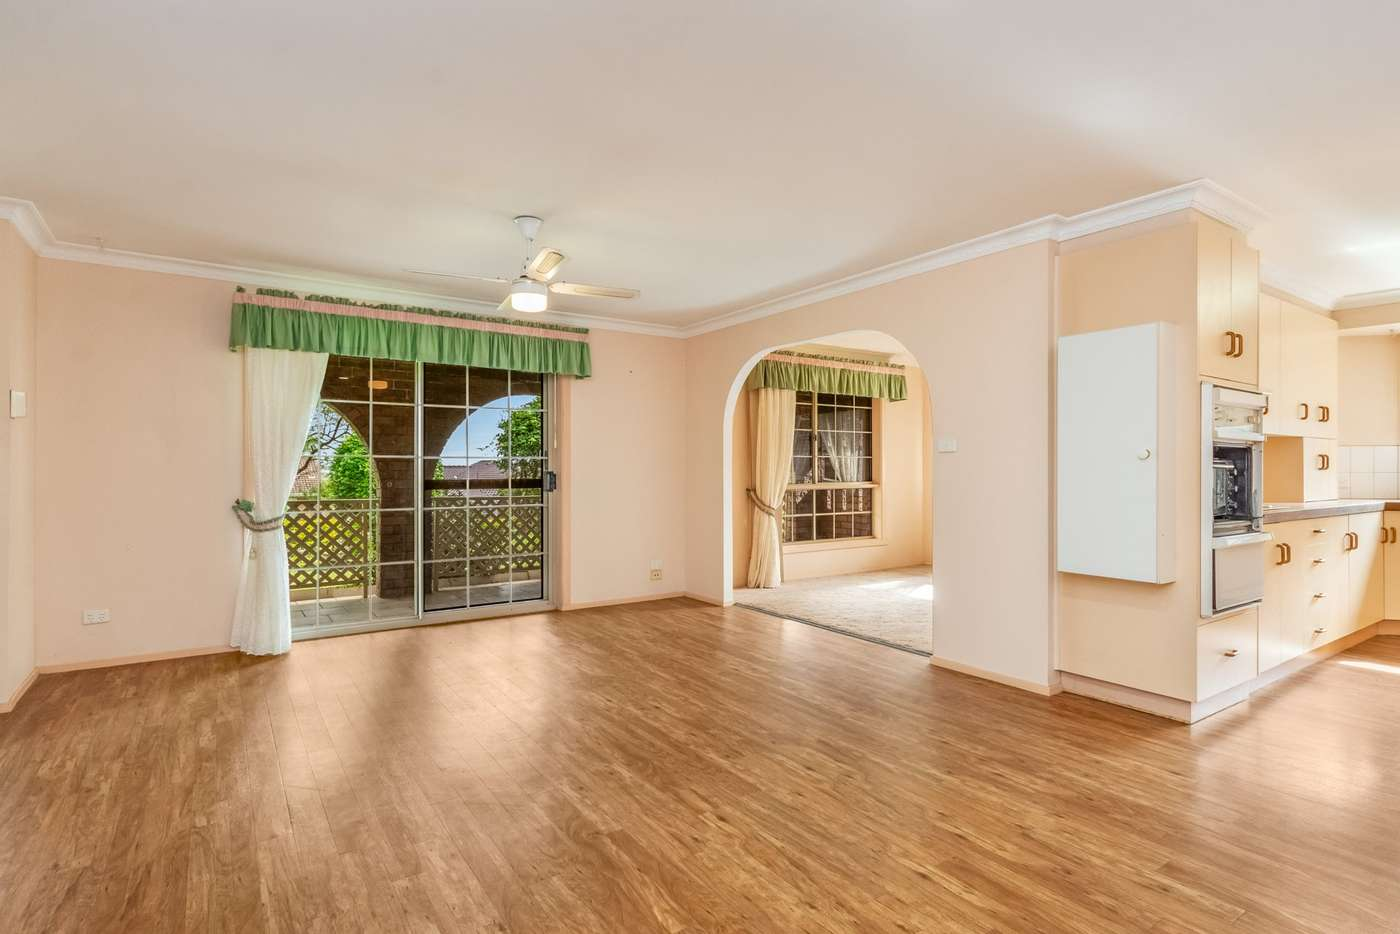 Fifth view of Homely house listing, 44 Beaumont Drive, East Lismore NSW 2480